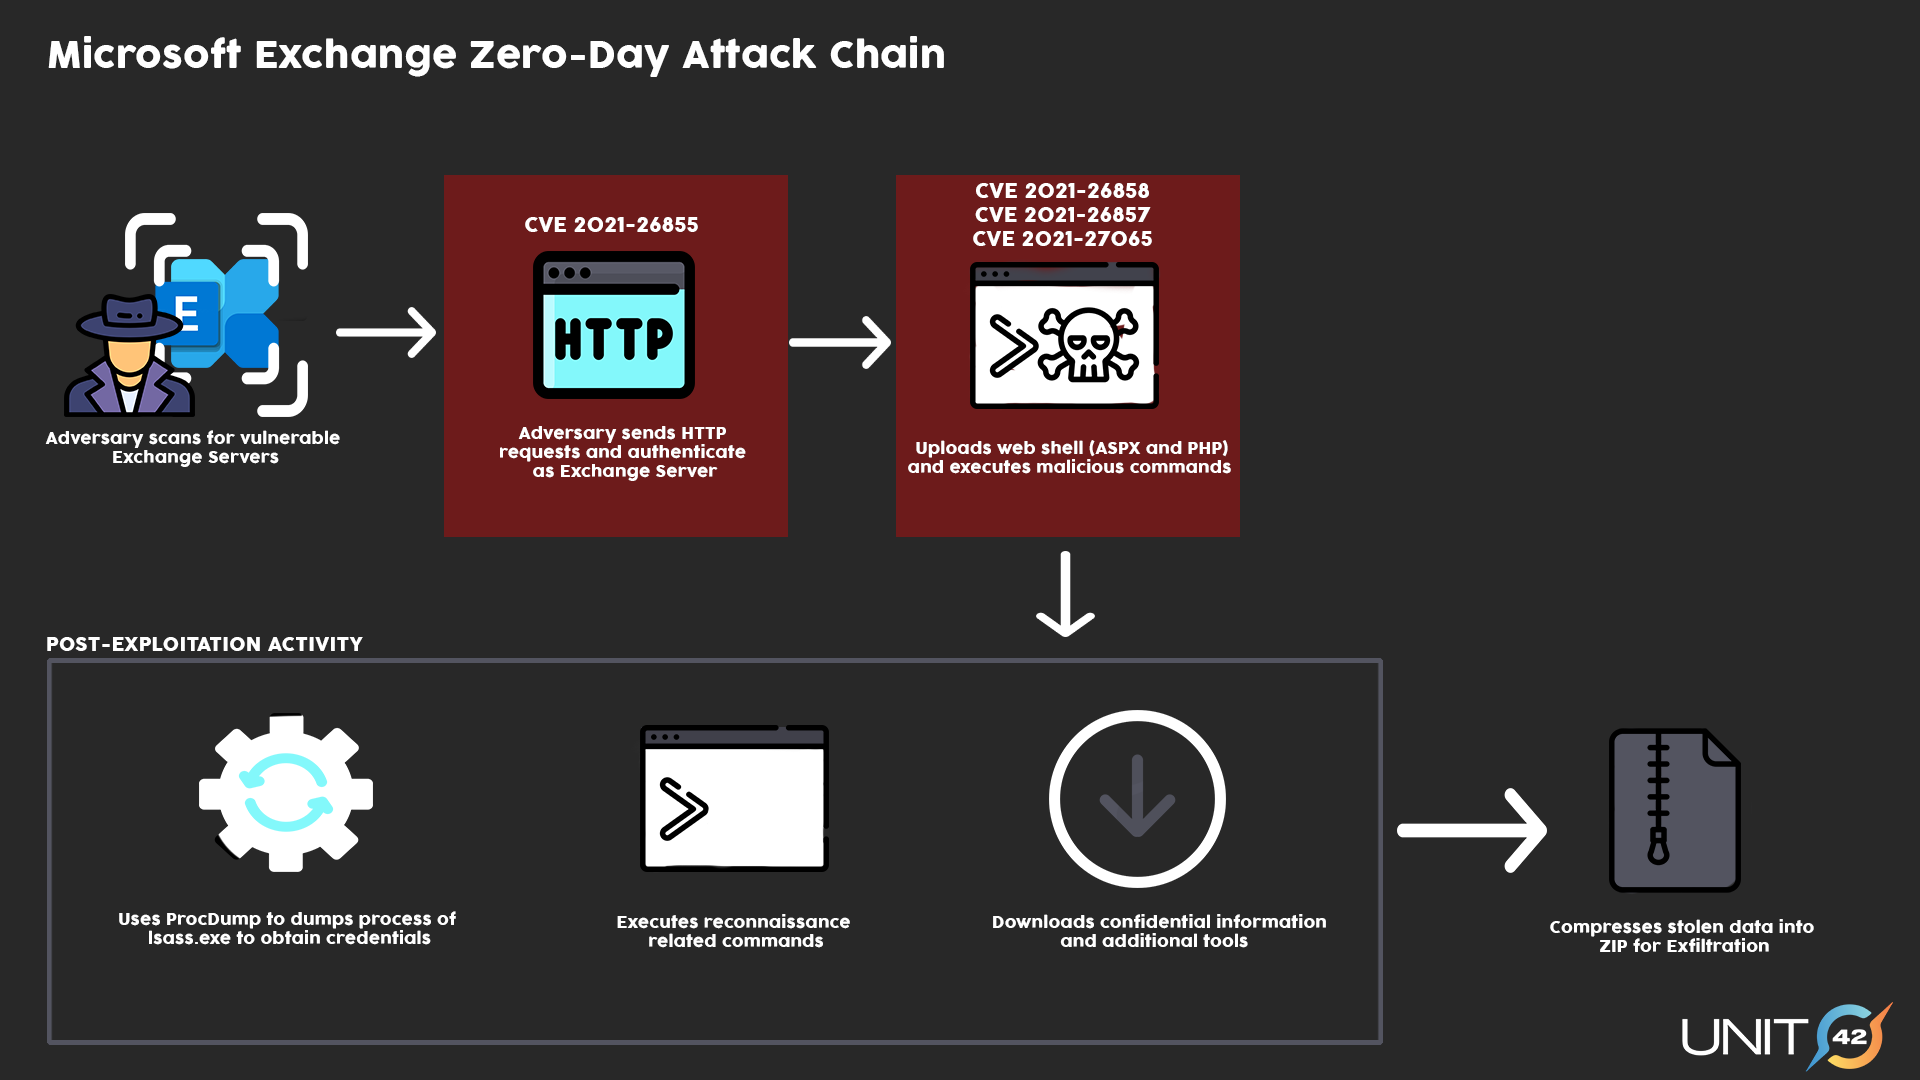 Microsoft Exchange Zero-Day Attack Chain - Adversary scans for vulnerable Exchange Servers; Adversary sends HTTP requests and authenticates an exchange server using CVE-2021-26855; Uploads webshell and executes malicious commands using three other Microsoft Exchange Server vulnerabilities discussed here. Post-exploitation activity: Uses ProcDump to dump LSASS process memory to obtain credentials; Executes reconnaissance-related commands; Downloads confidential information and additional tools; Compresses stolen data into ZIP for exfiltration.